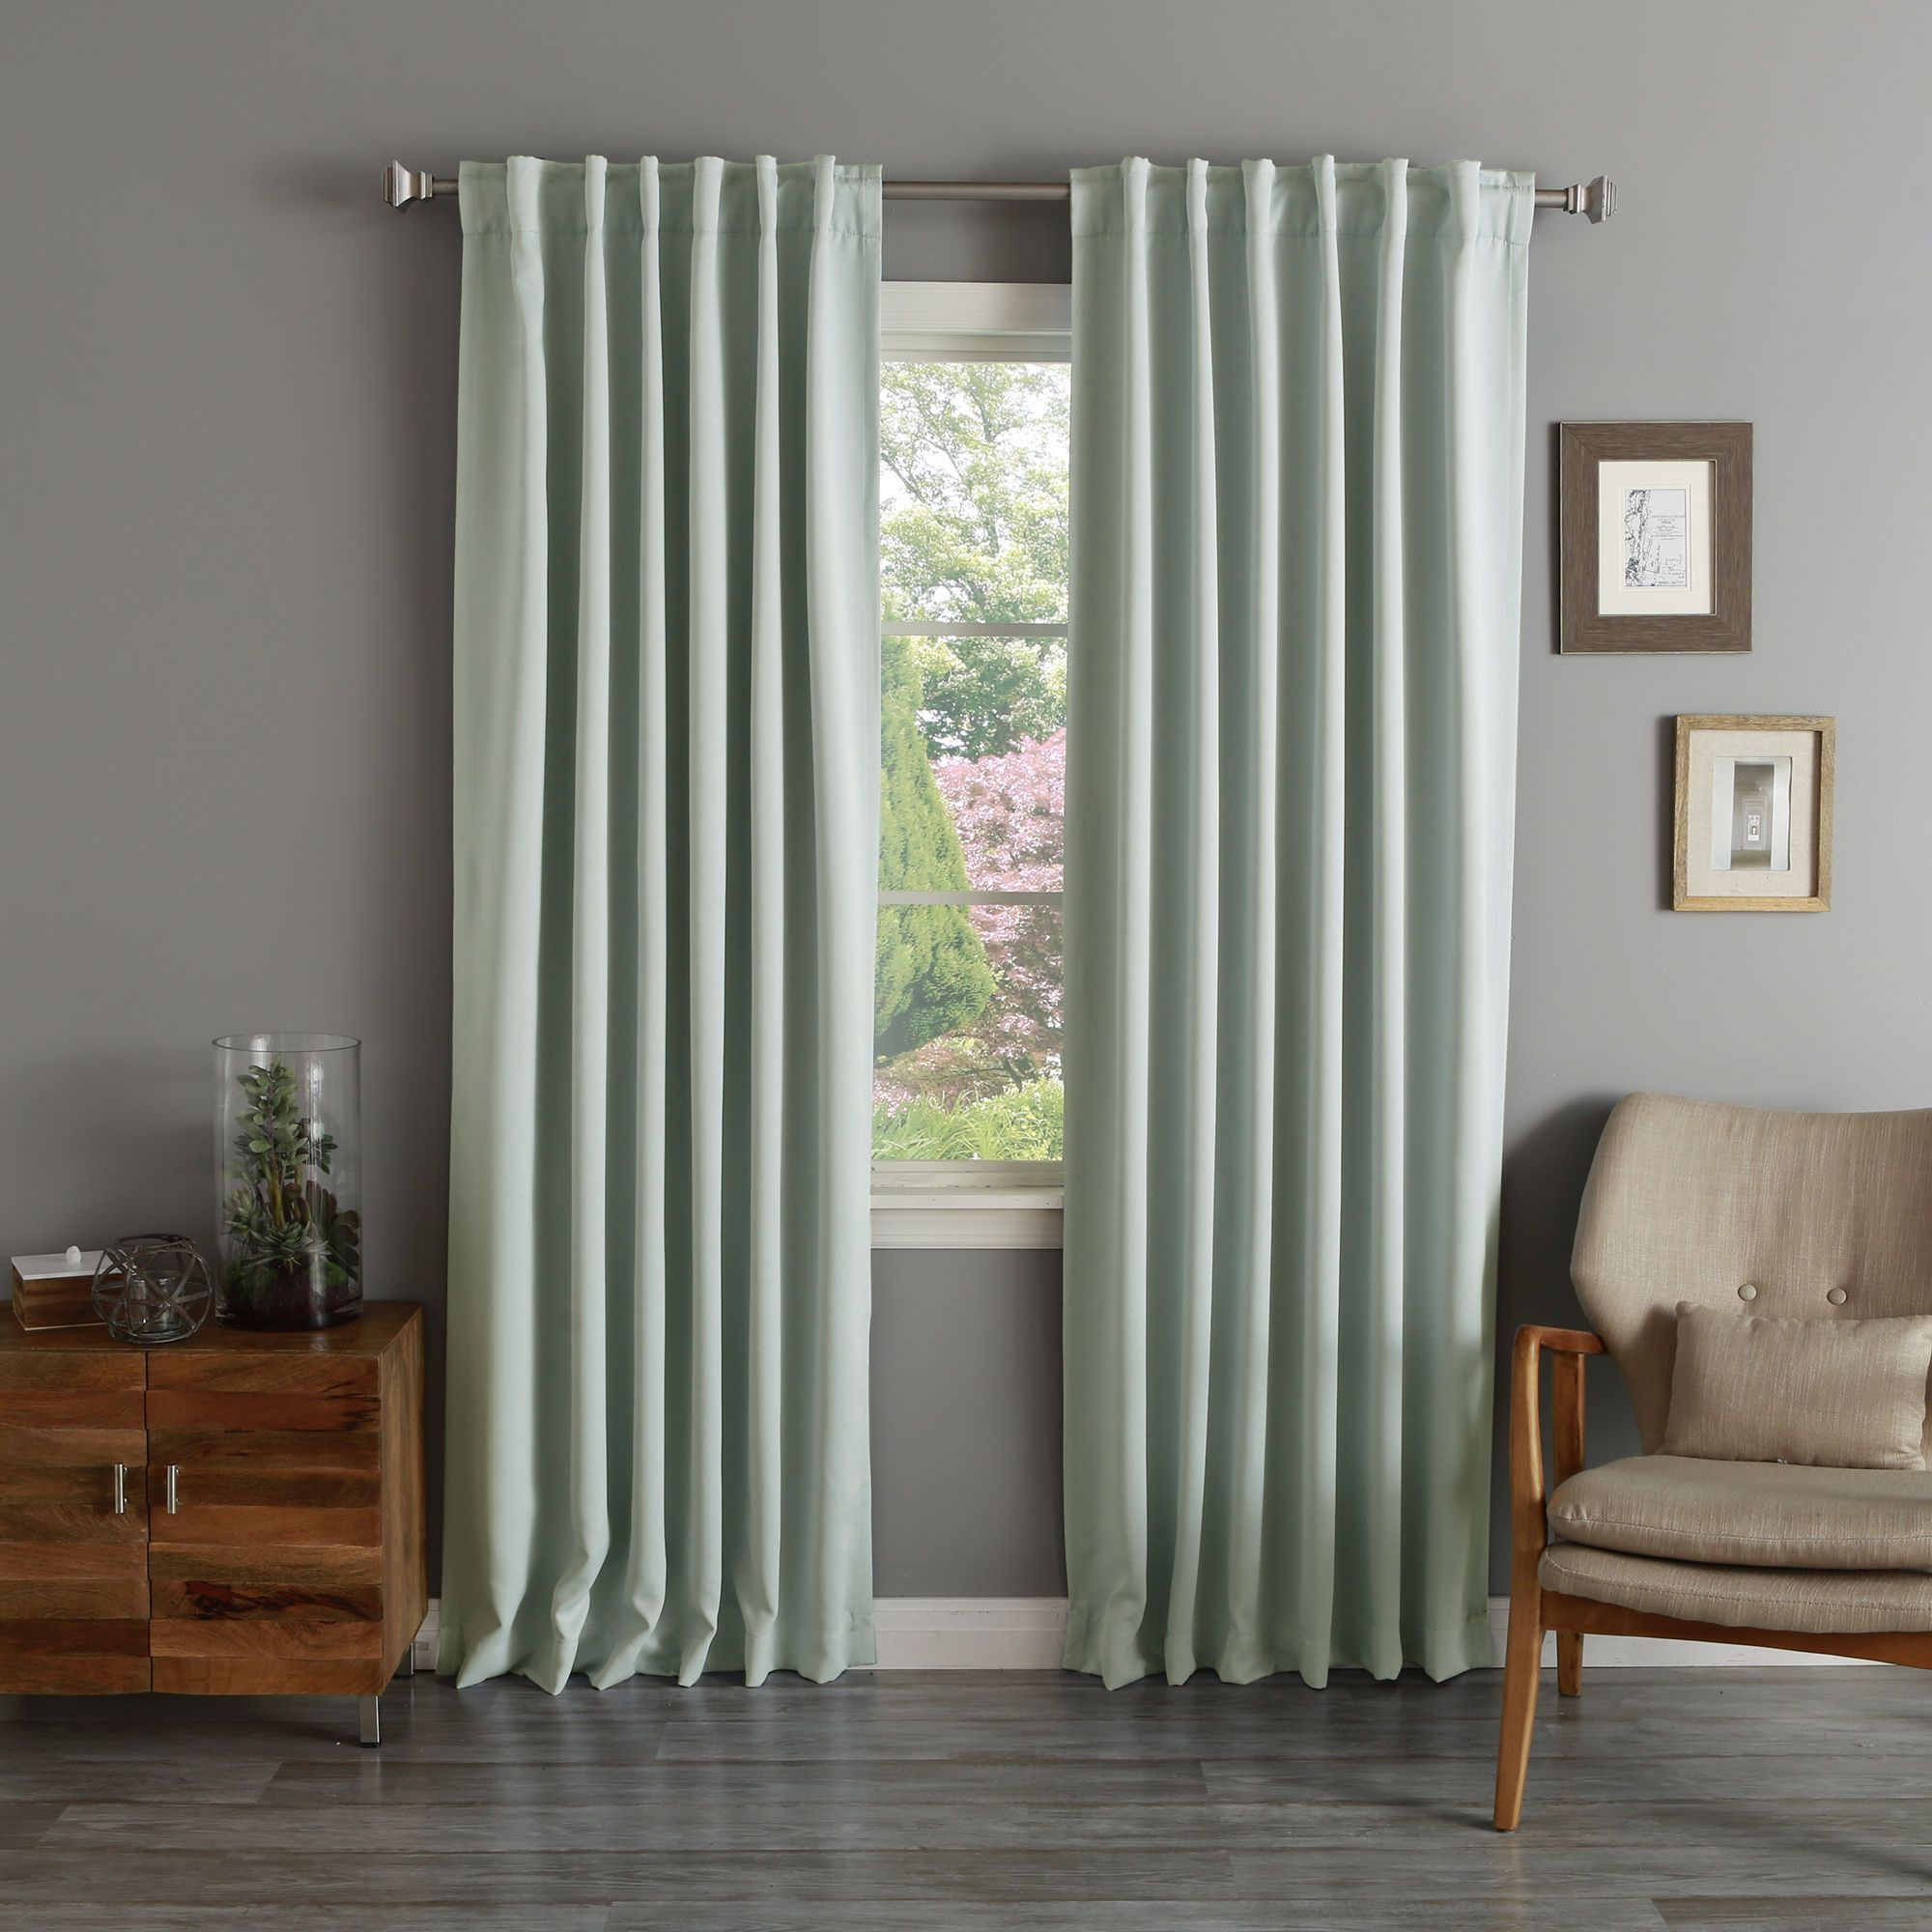 Aurora Home Rod Pocket Blackout Curtain Panel Pair Mint 63 L Green Size 52 X Polyester Solid